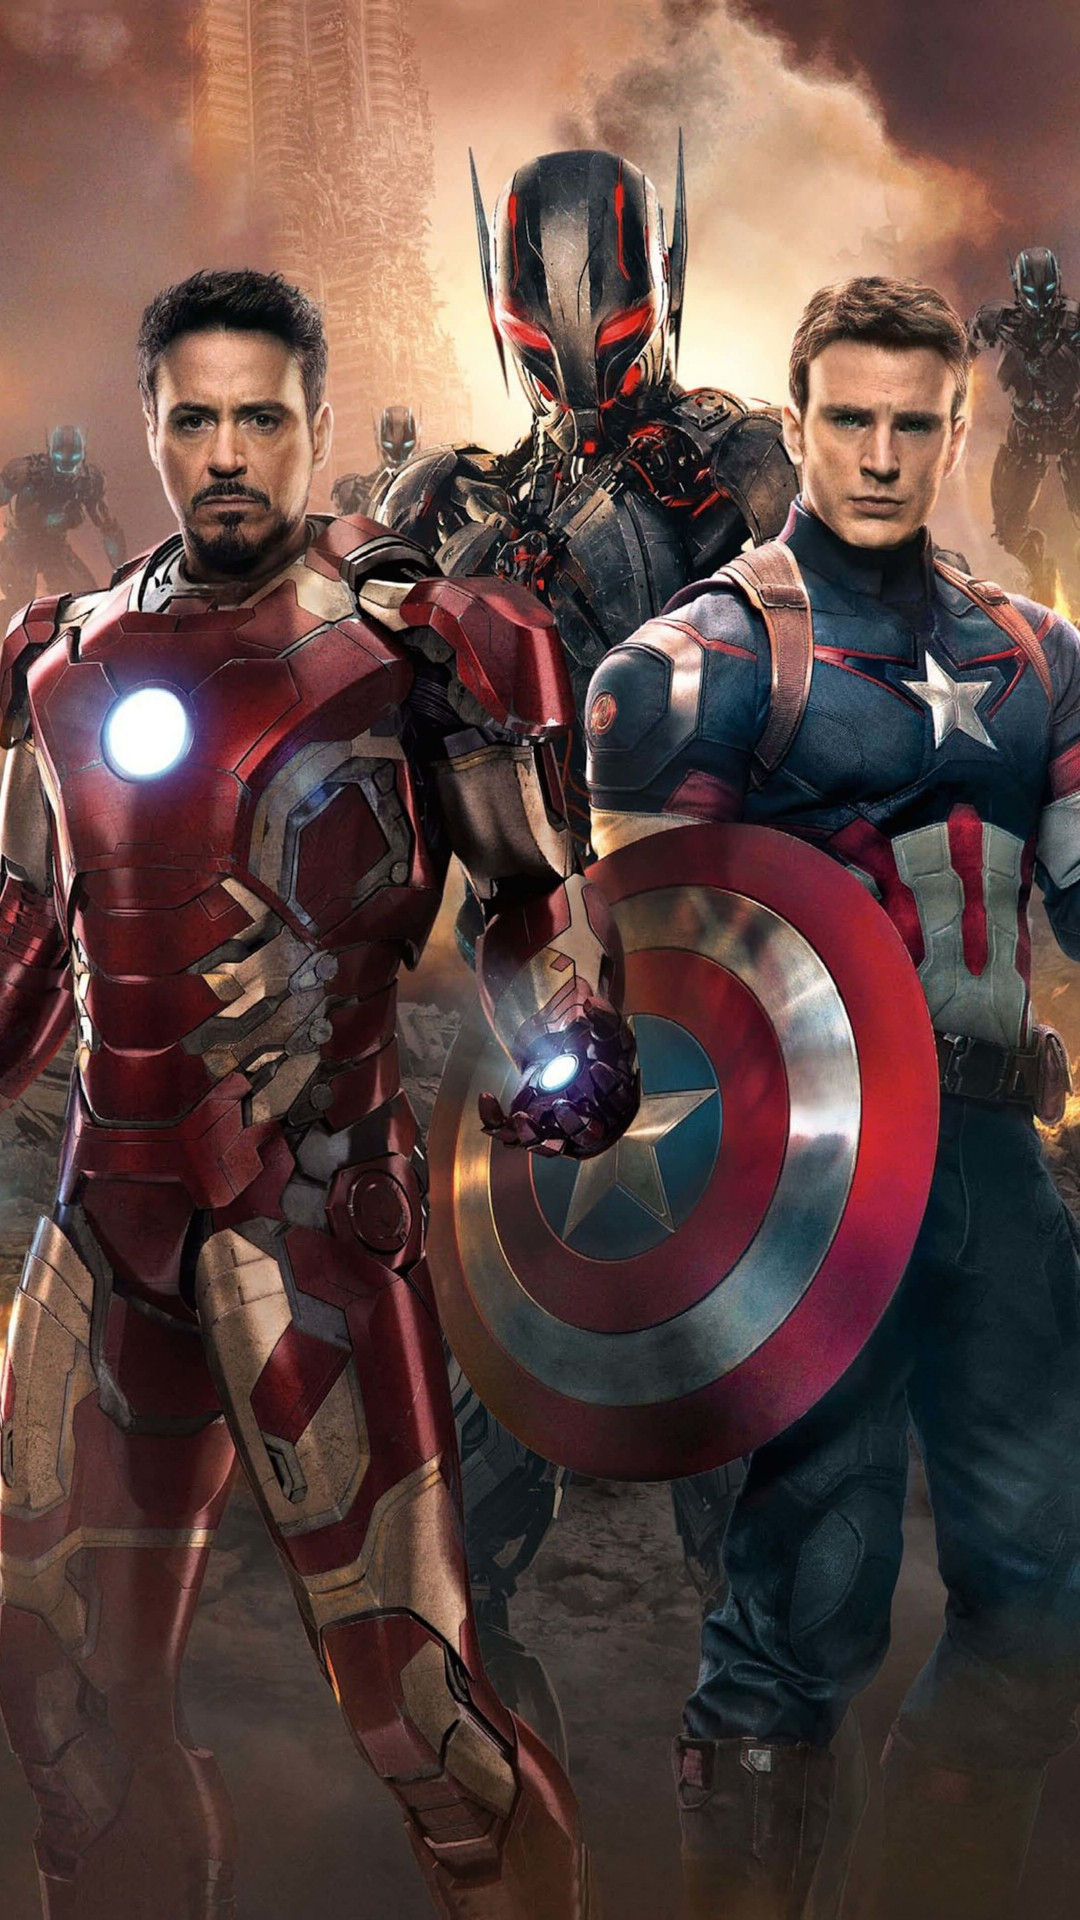 The Avengers: Age of Ultron - Iron Man and Captain America Wallpaper for SONY Xperia Z1